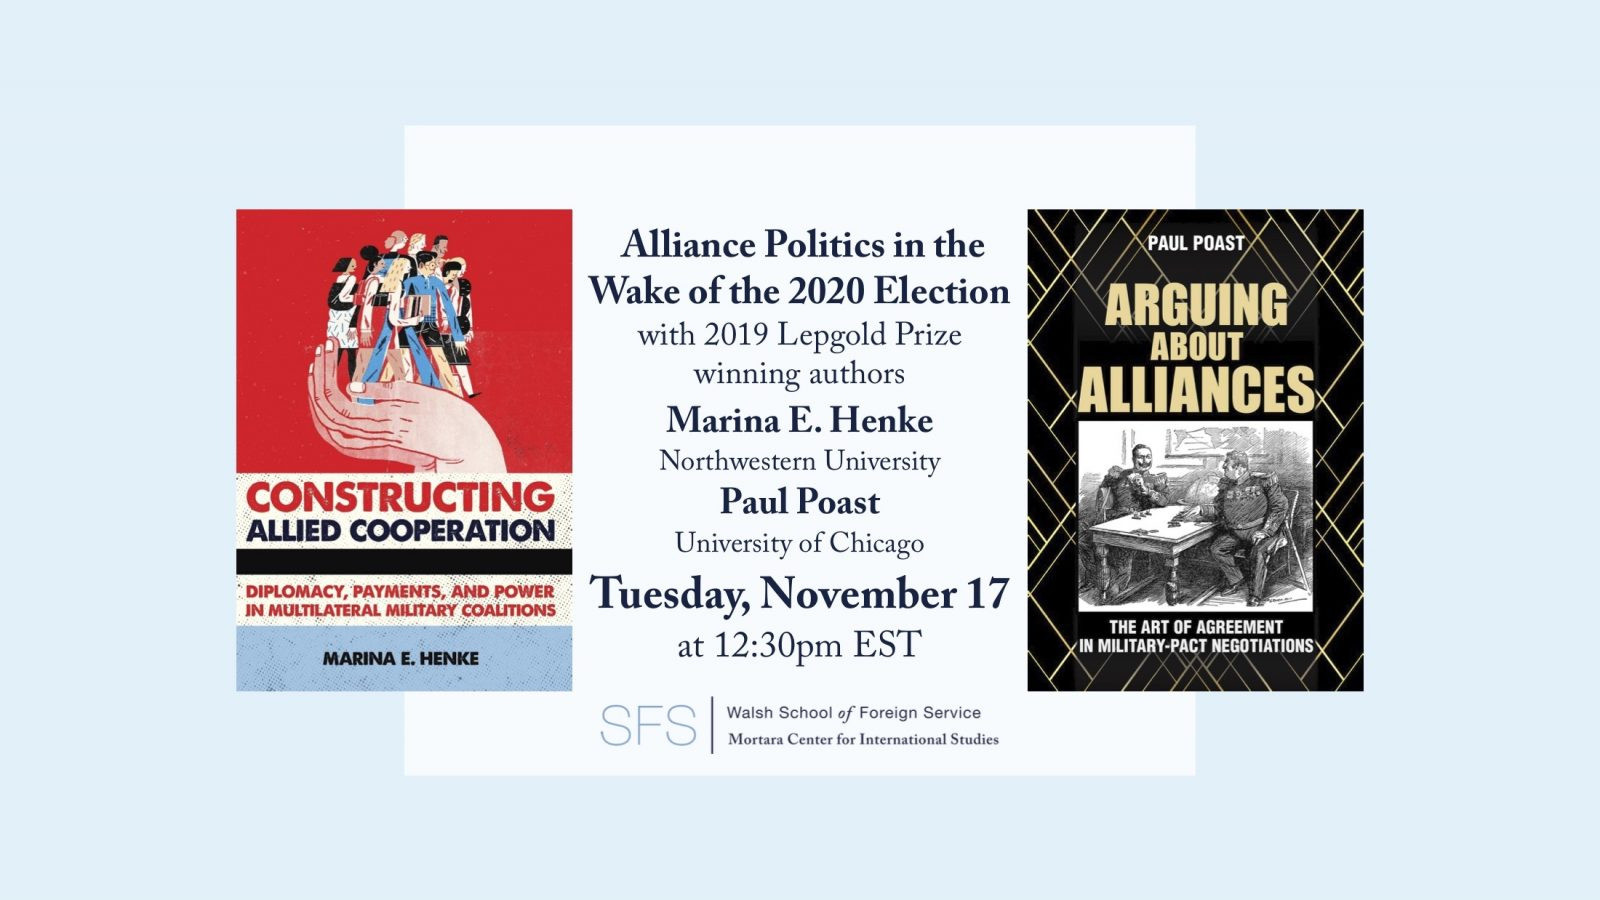 Alliance Politics in the Wake of the 2020 Election with 2019 Lepgold Prize winning authors Marina E. Henke of Northwestern University and Paul Poast of the University of Chicago on Tuesday November 17 at 12:30pm EST